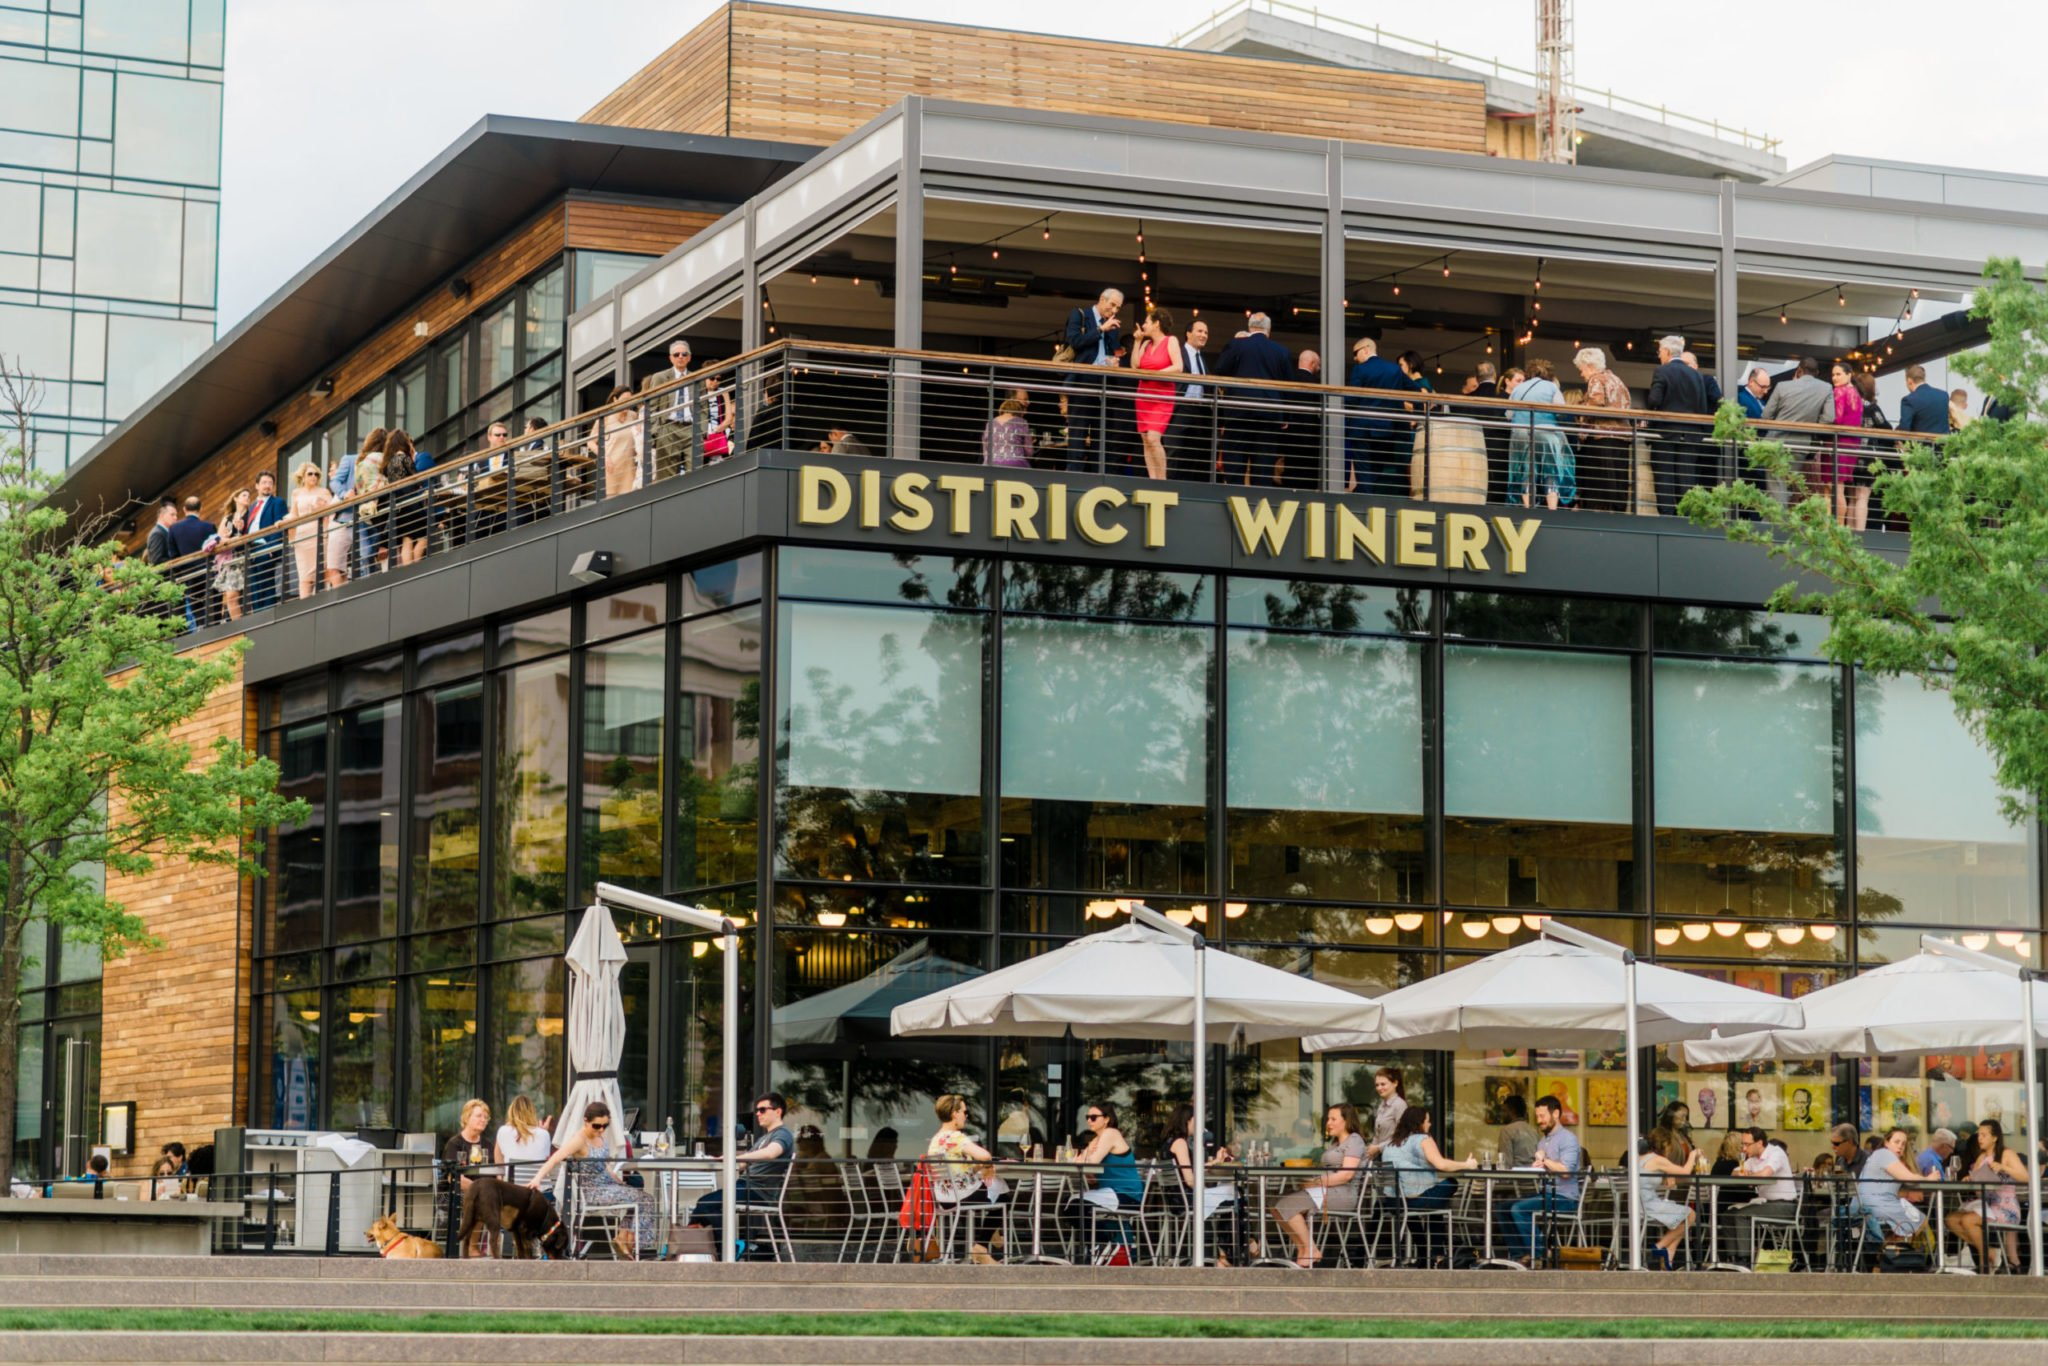 District Winery